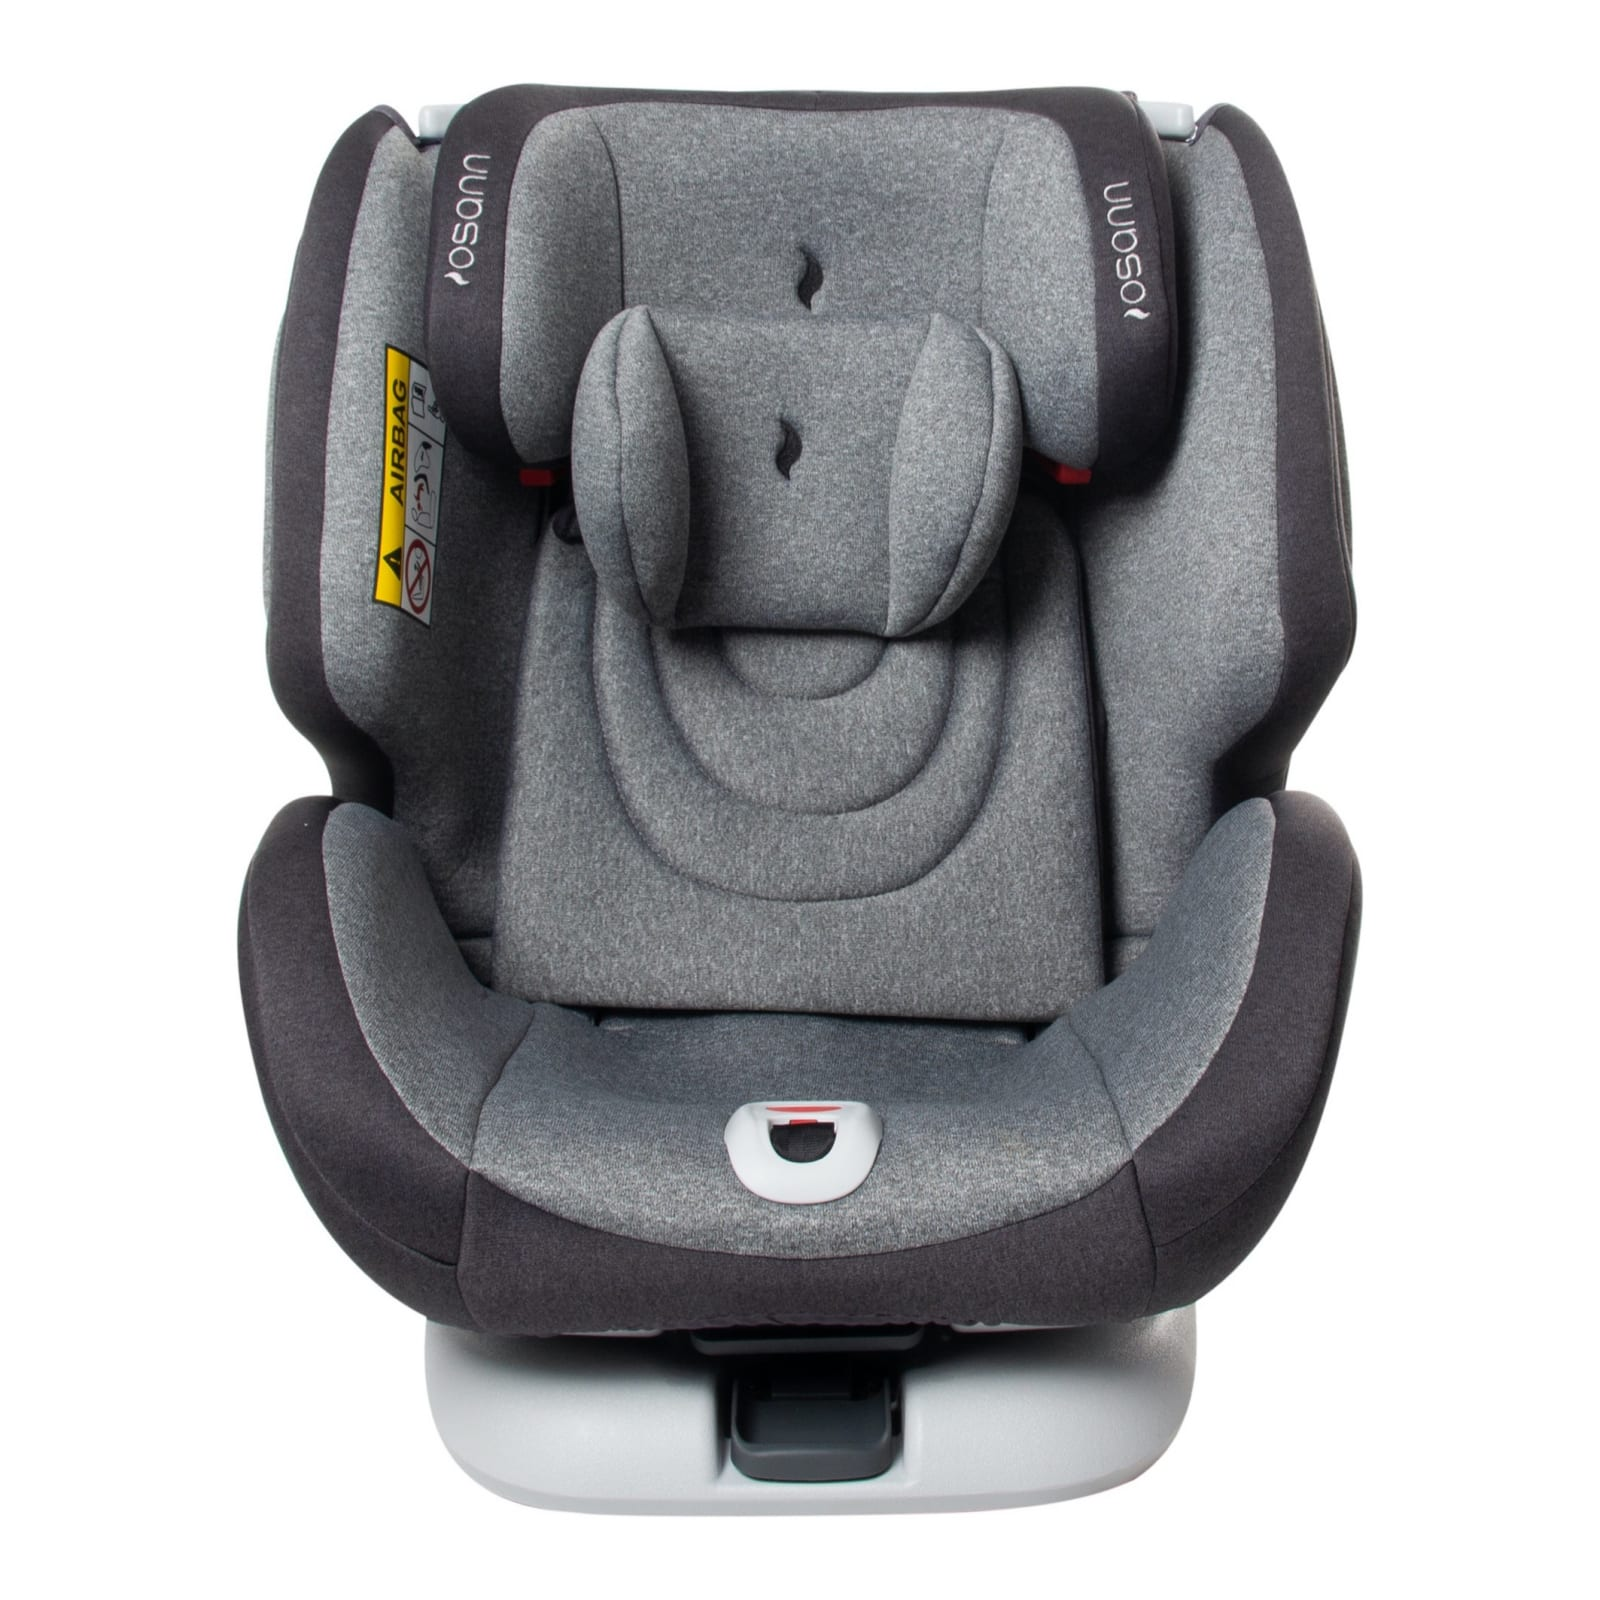 Osann One 360 Car Seat – Group 0+/1/2/3 product image